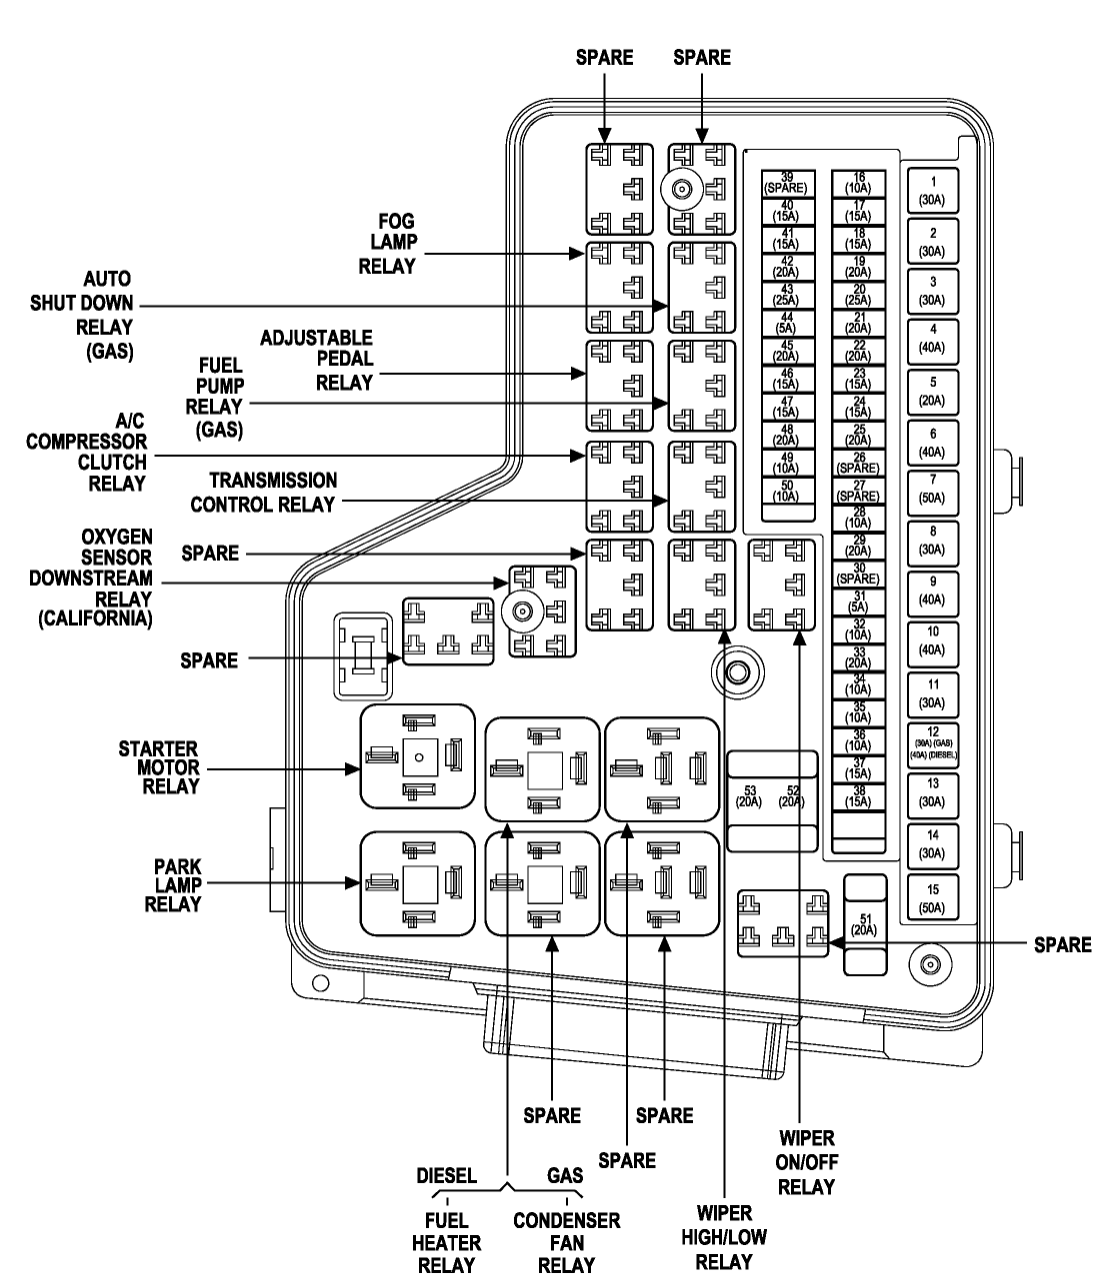 2008 Dodge Ram 3500 Fuse Diagram Archive Of Automotive Wiring Stereo 2005 Box Electronic Diagrams Rh Ore House Co Uk Radio